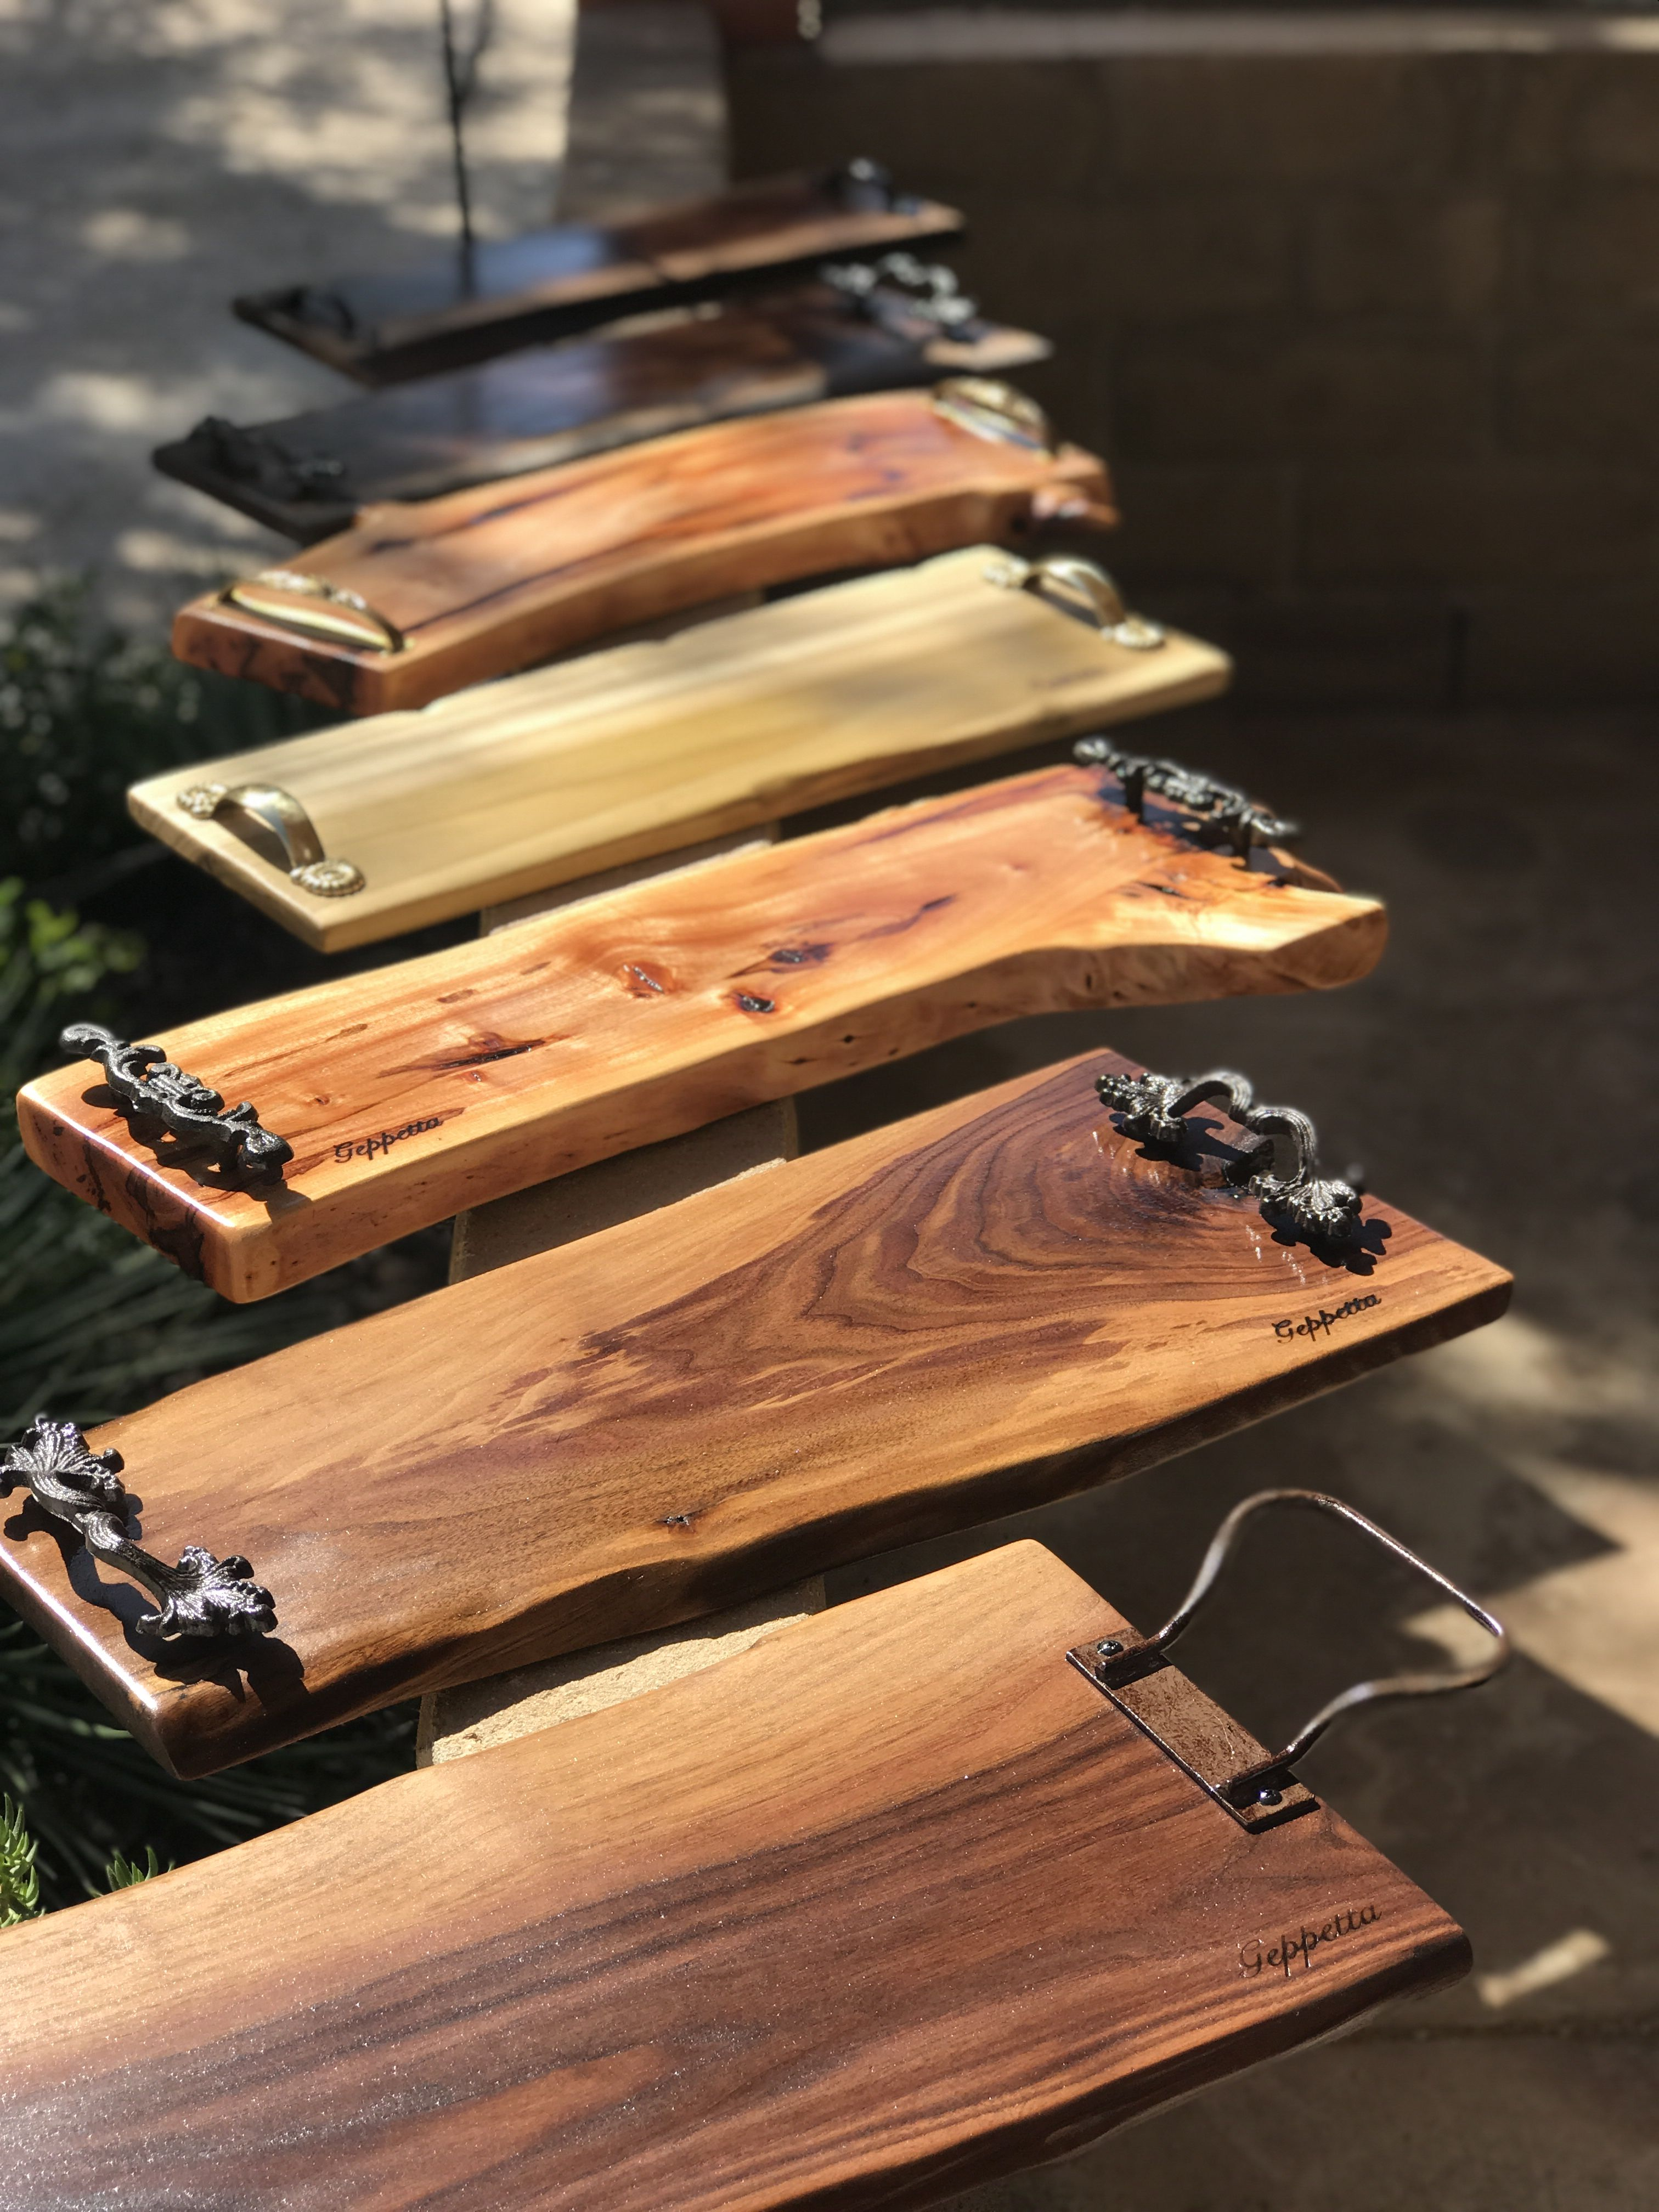 Geppetta Boards- Handmade Wooden Charcuterie and Cheese Boards | Geppetta